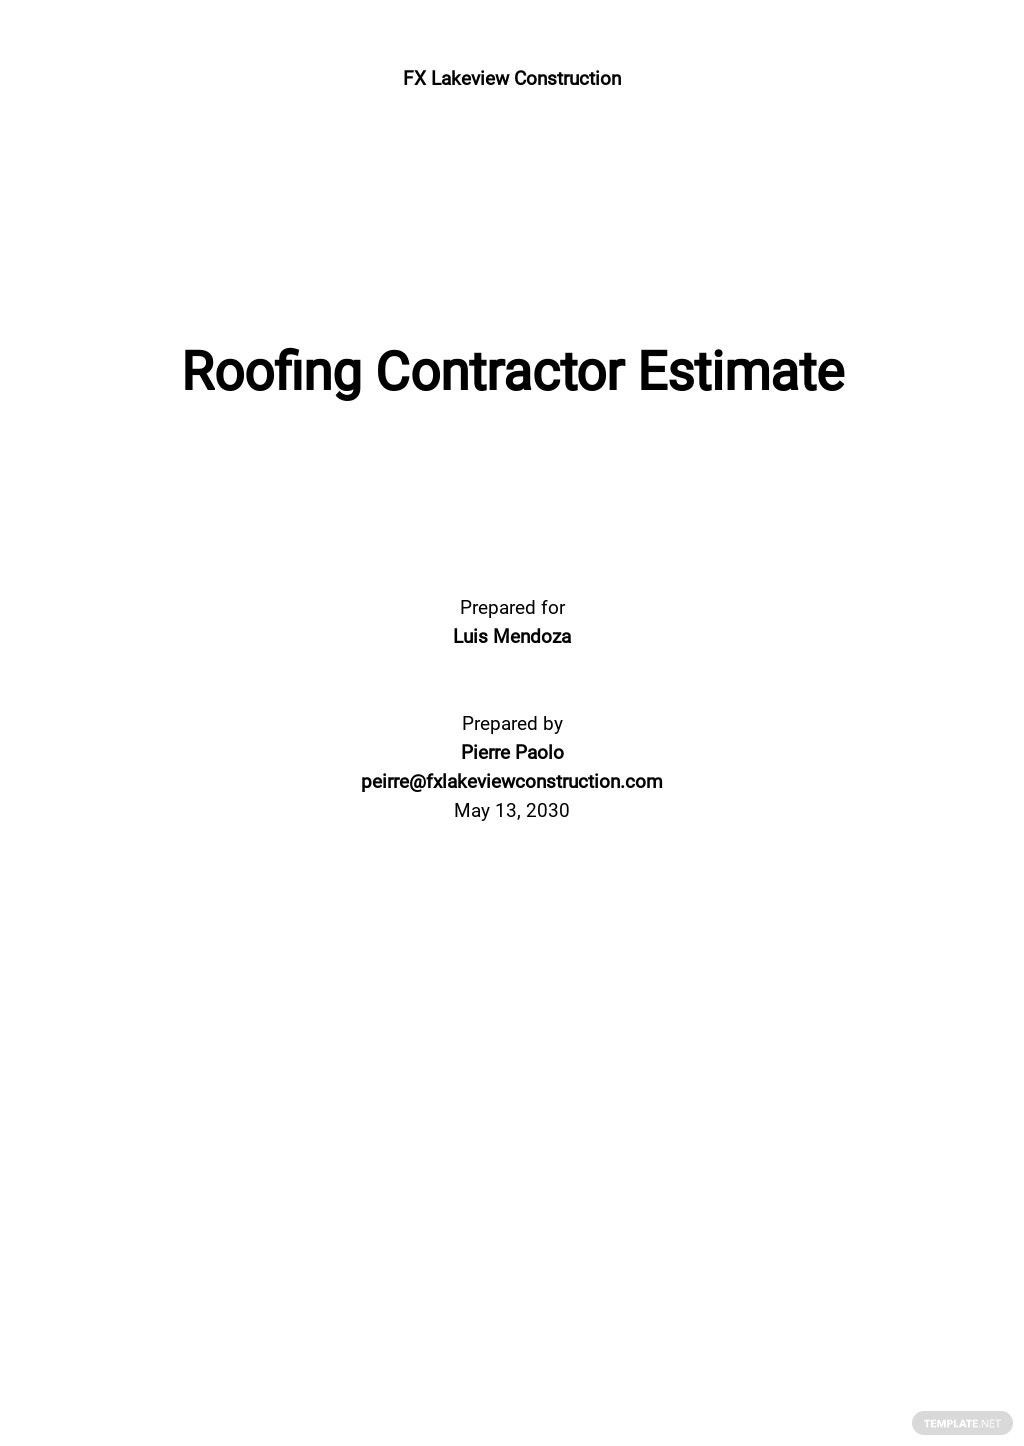 Roofing Contractor Estimate Template